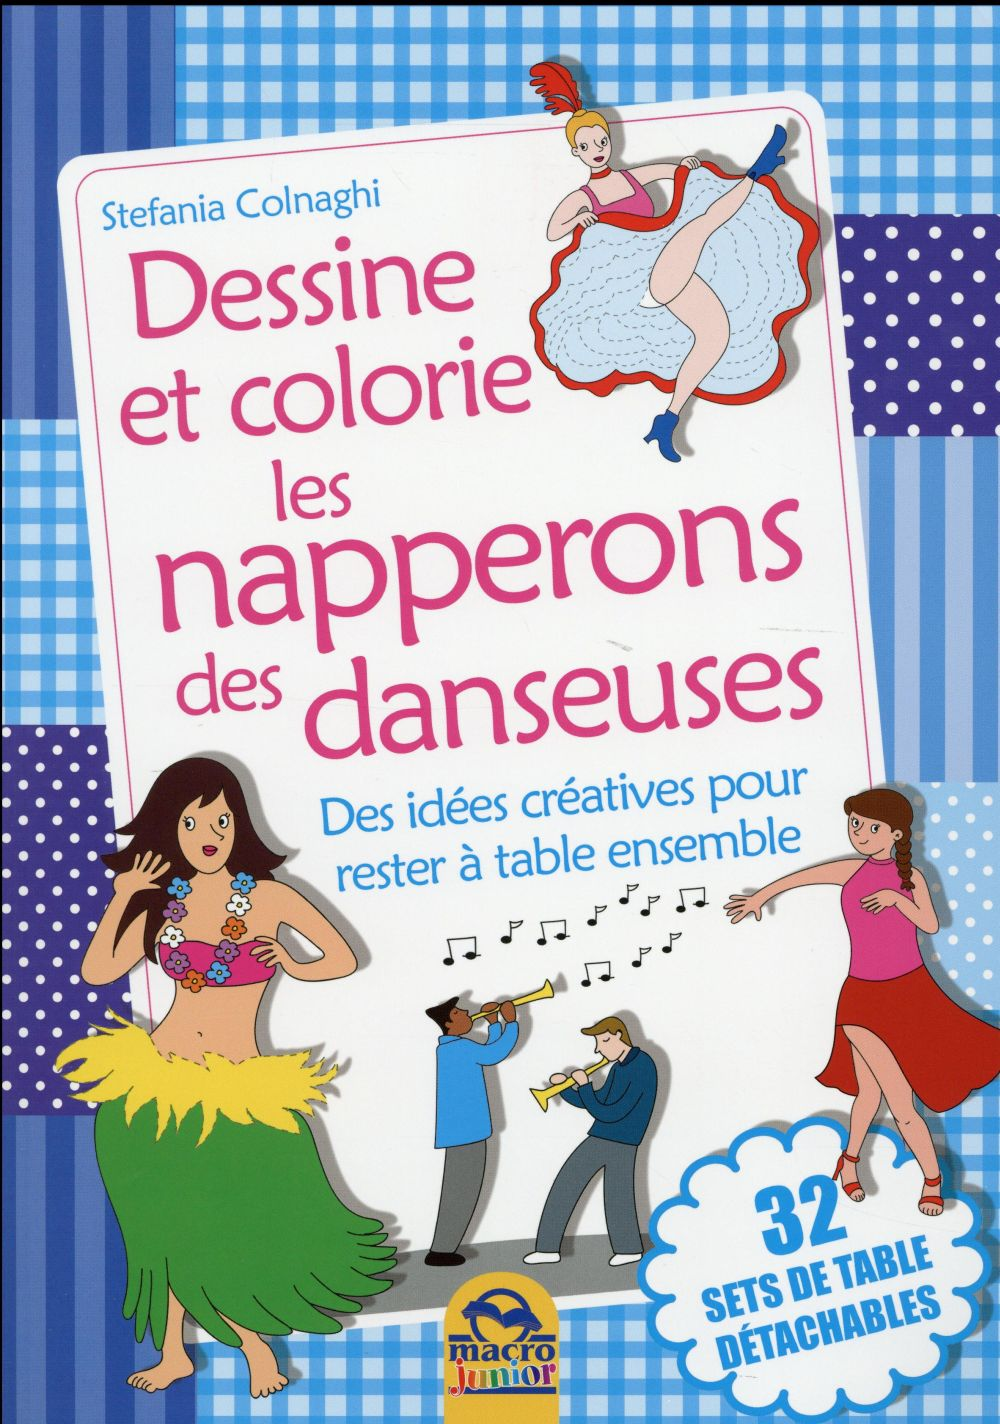 DESSINE ET COLORIE LES NAPPERONS DES DANSEUSES  32 SETS DE TABLES DETACHBLES - DES IDEES CREATIVES